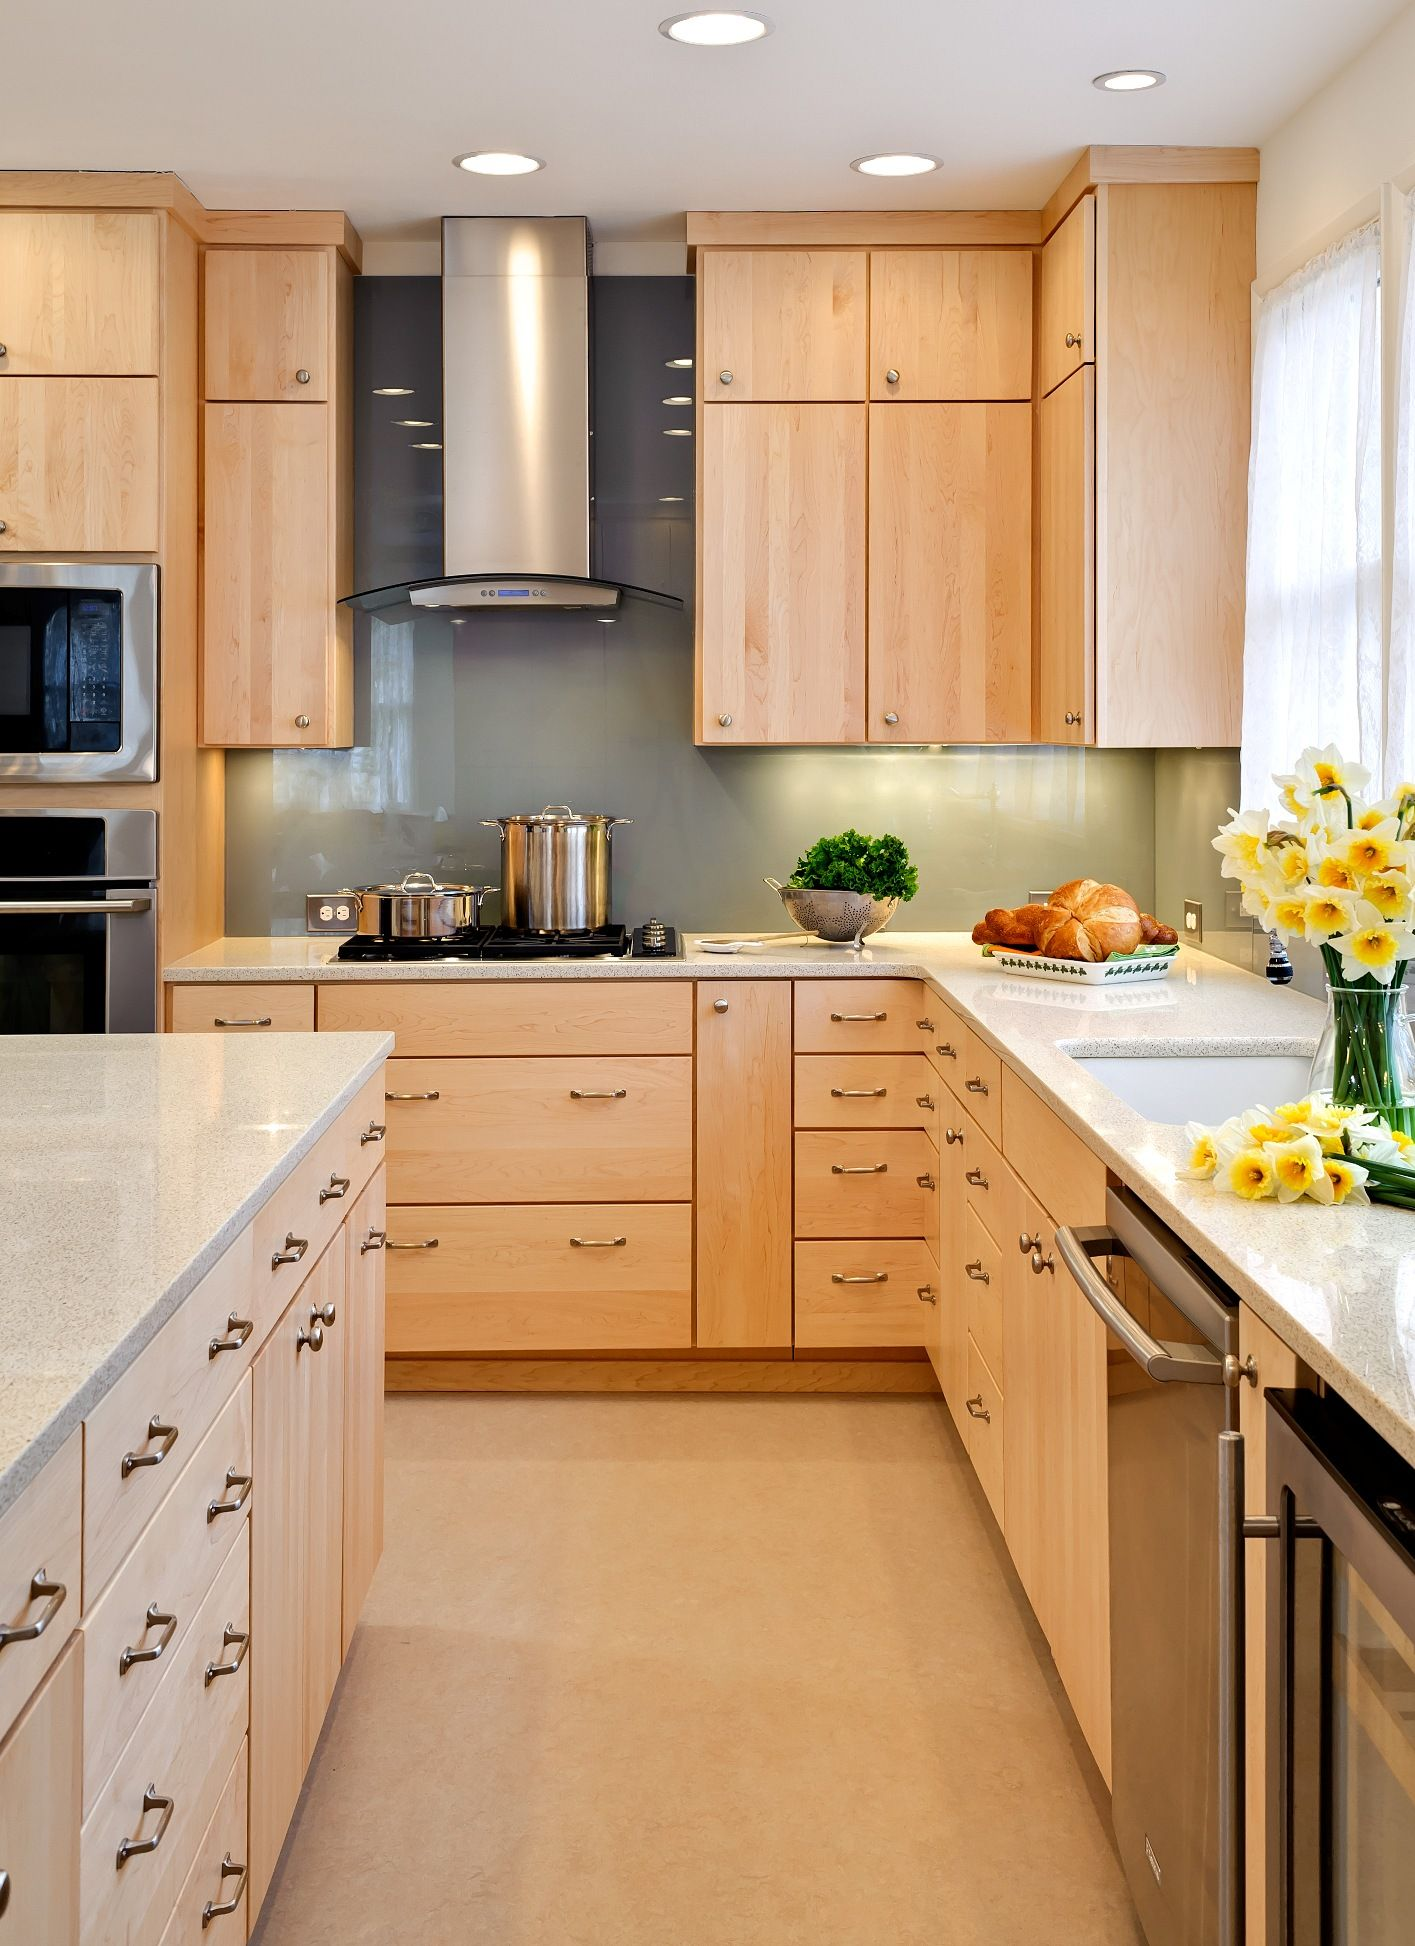 Modern Light Wood Kitchen Cabinets Too Modern But We Could Do Maple Cabinets As Another Option And